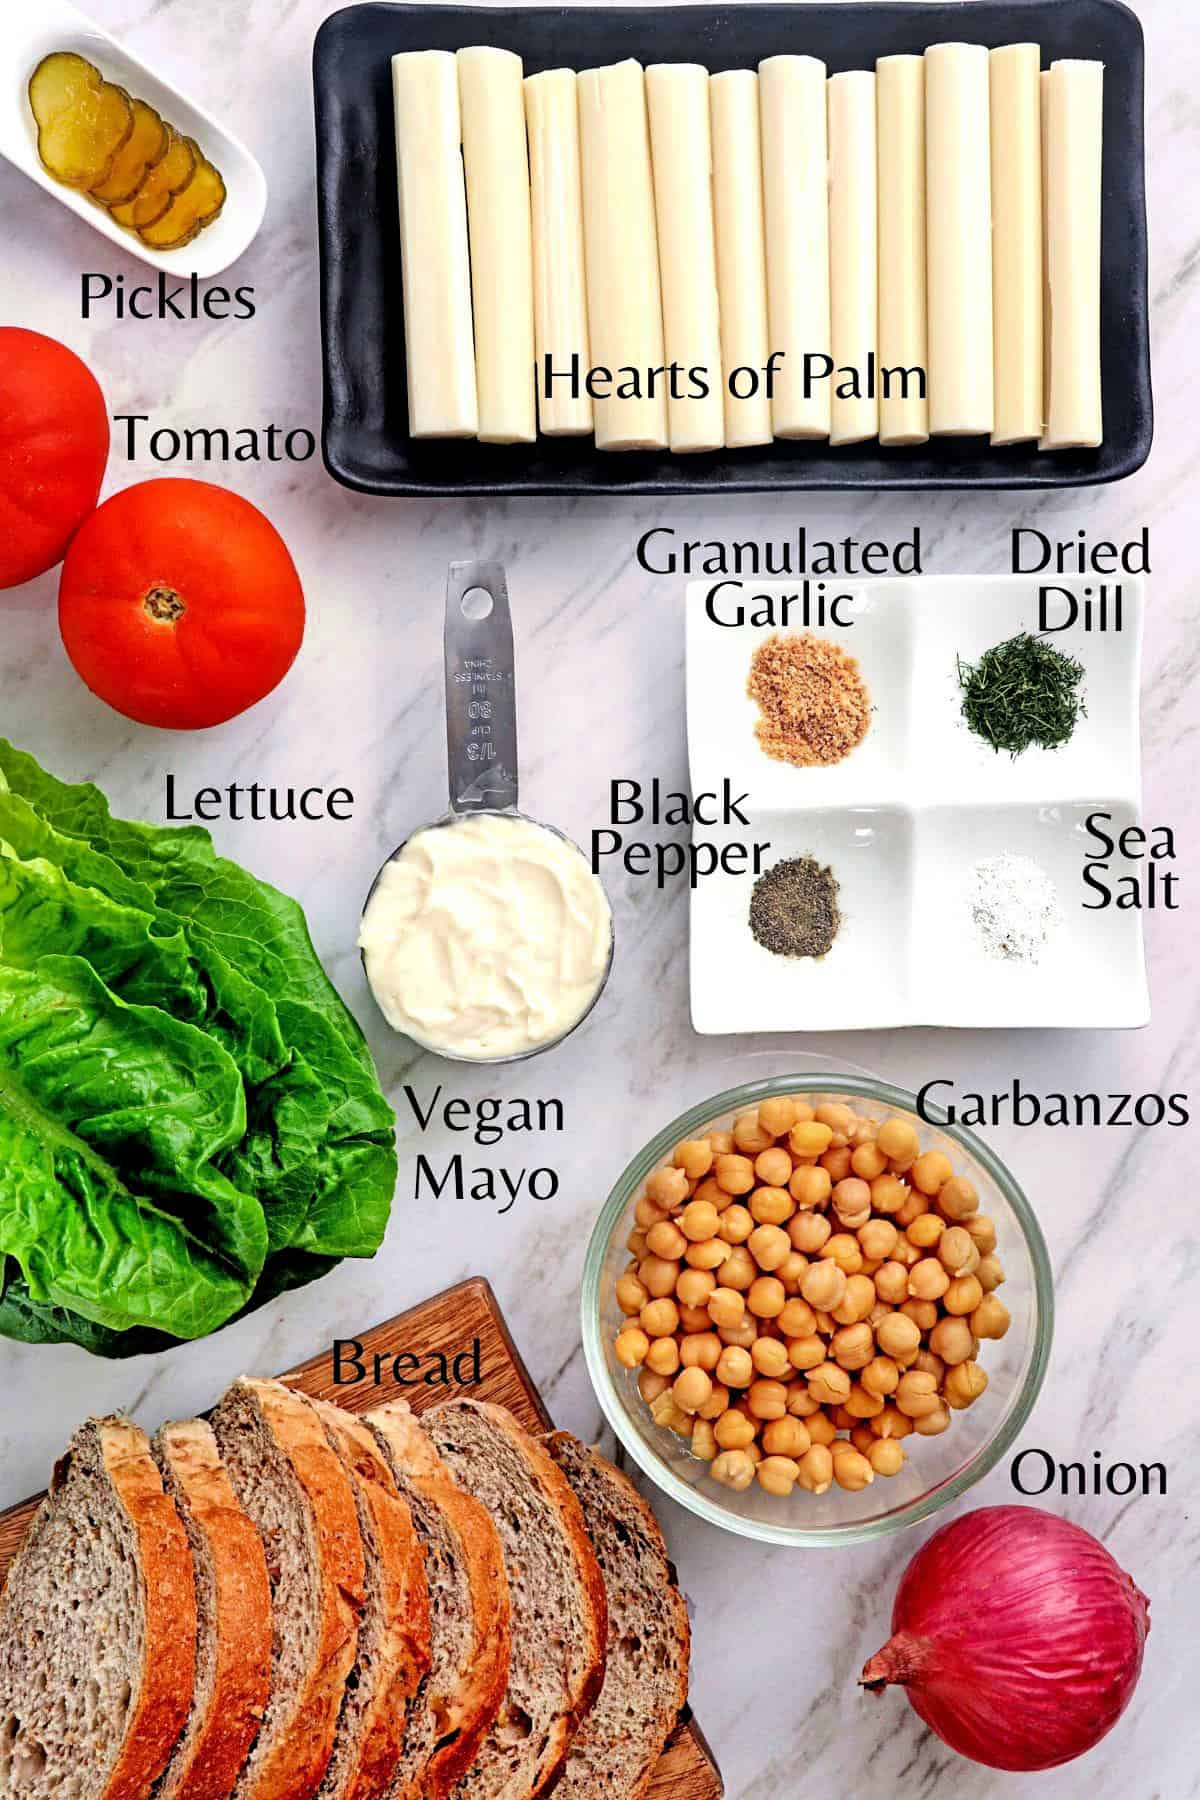 All ingredients to make a vegan tuna sandwich on a marble table top.